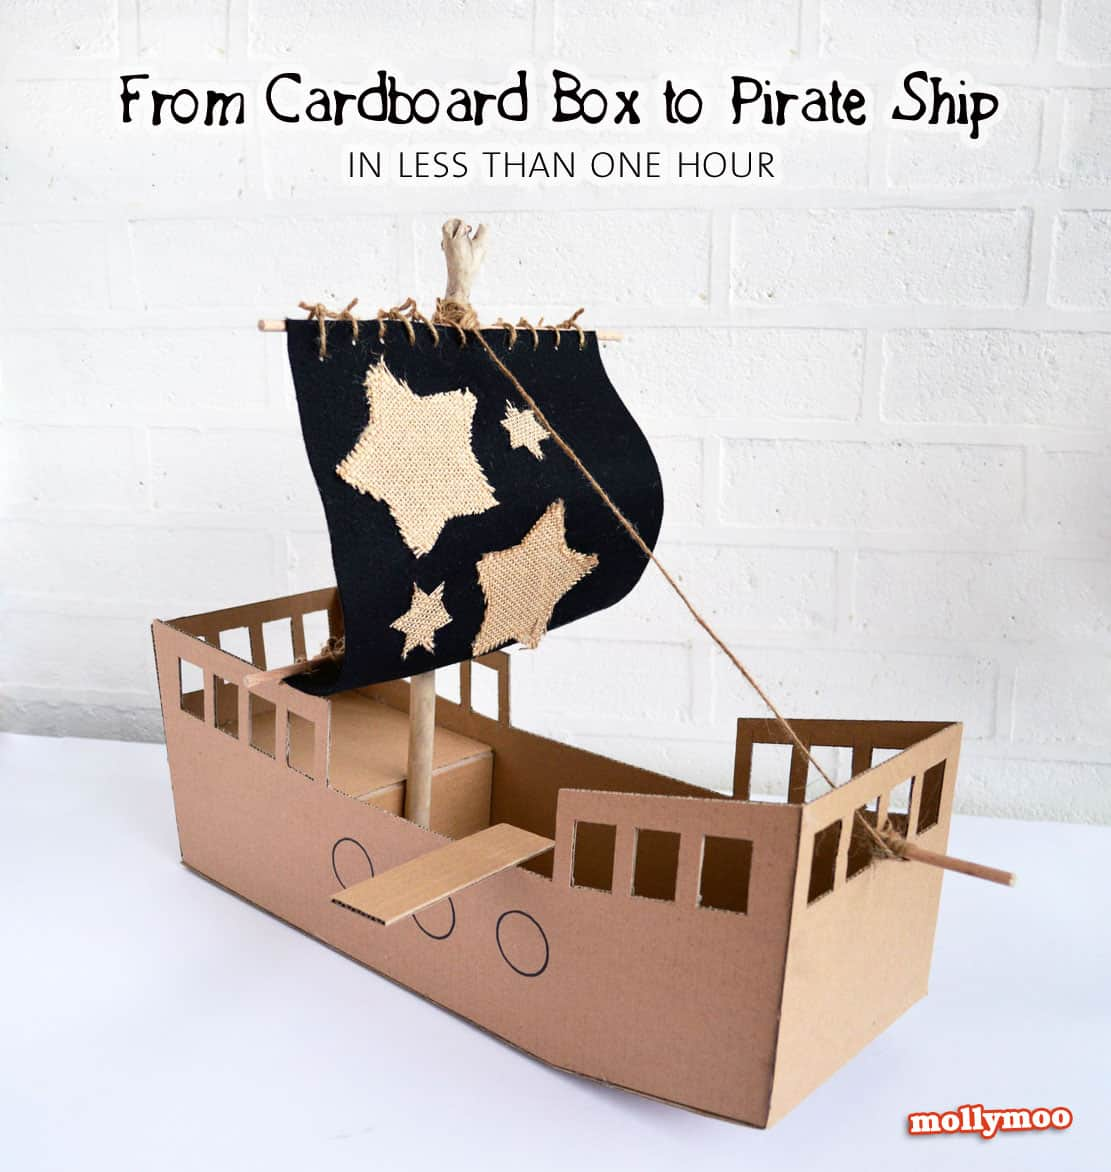 Diy cardboard pirate ship